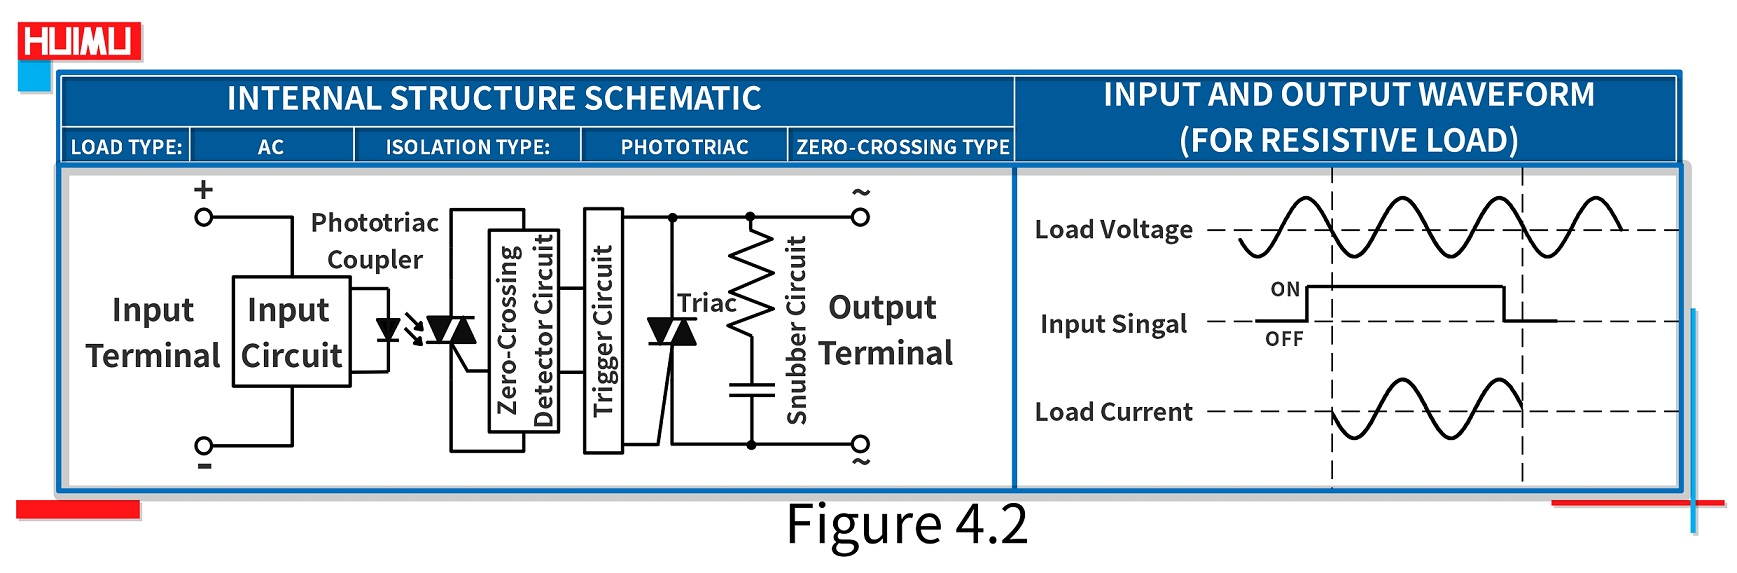 The internal structure schematic and waveform of Zero-crossing AC solid state relays